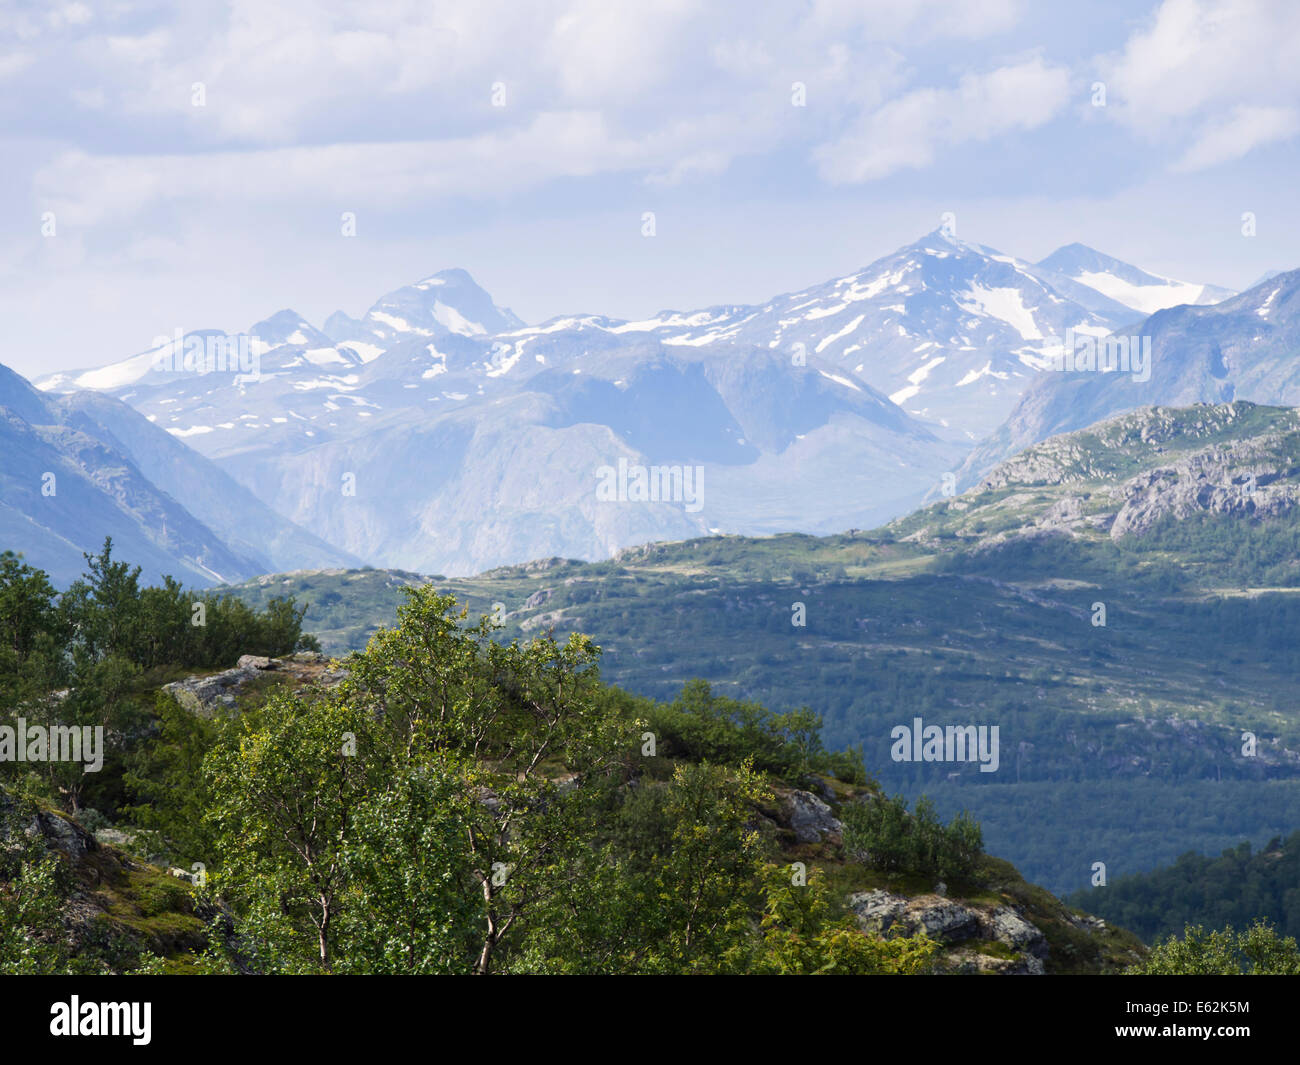 Mountain scenery, Jotunheimen Norway Scandinavia, mountain ranges in the National park - Stock Image